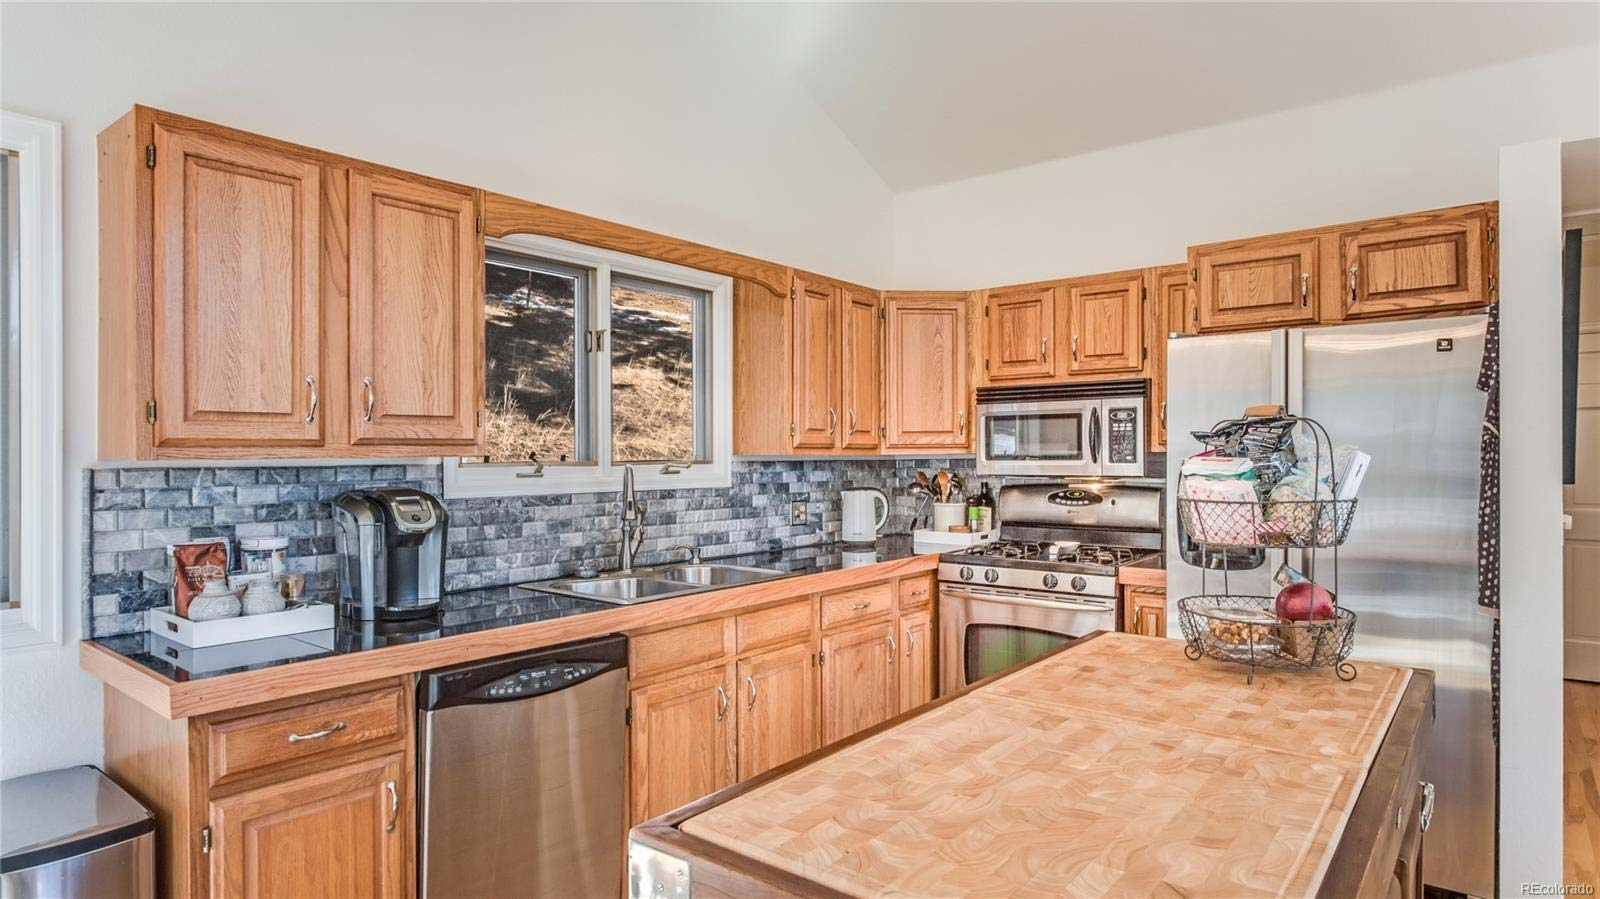 evergreen-co-homes-for-sale-500-1-3